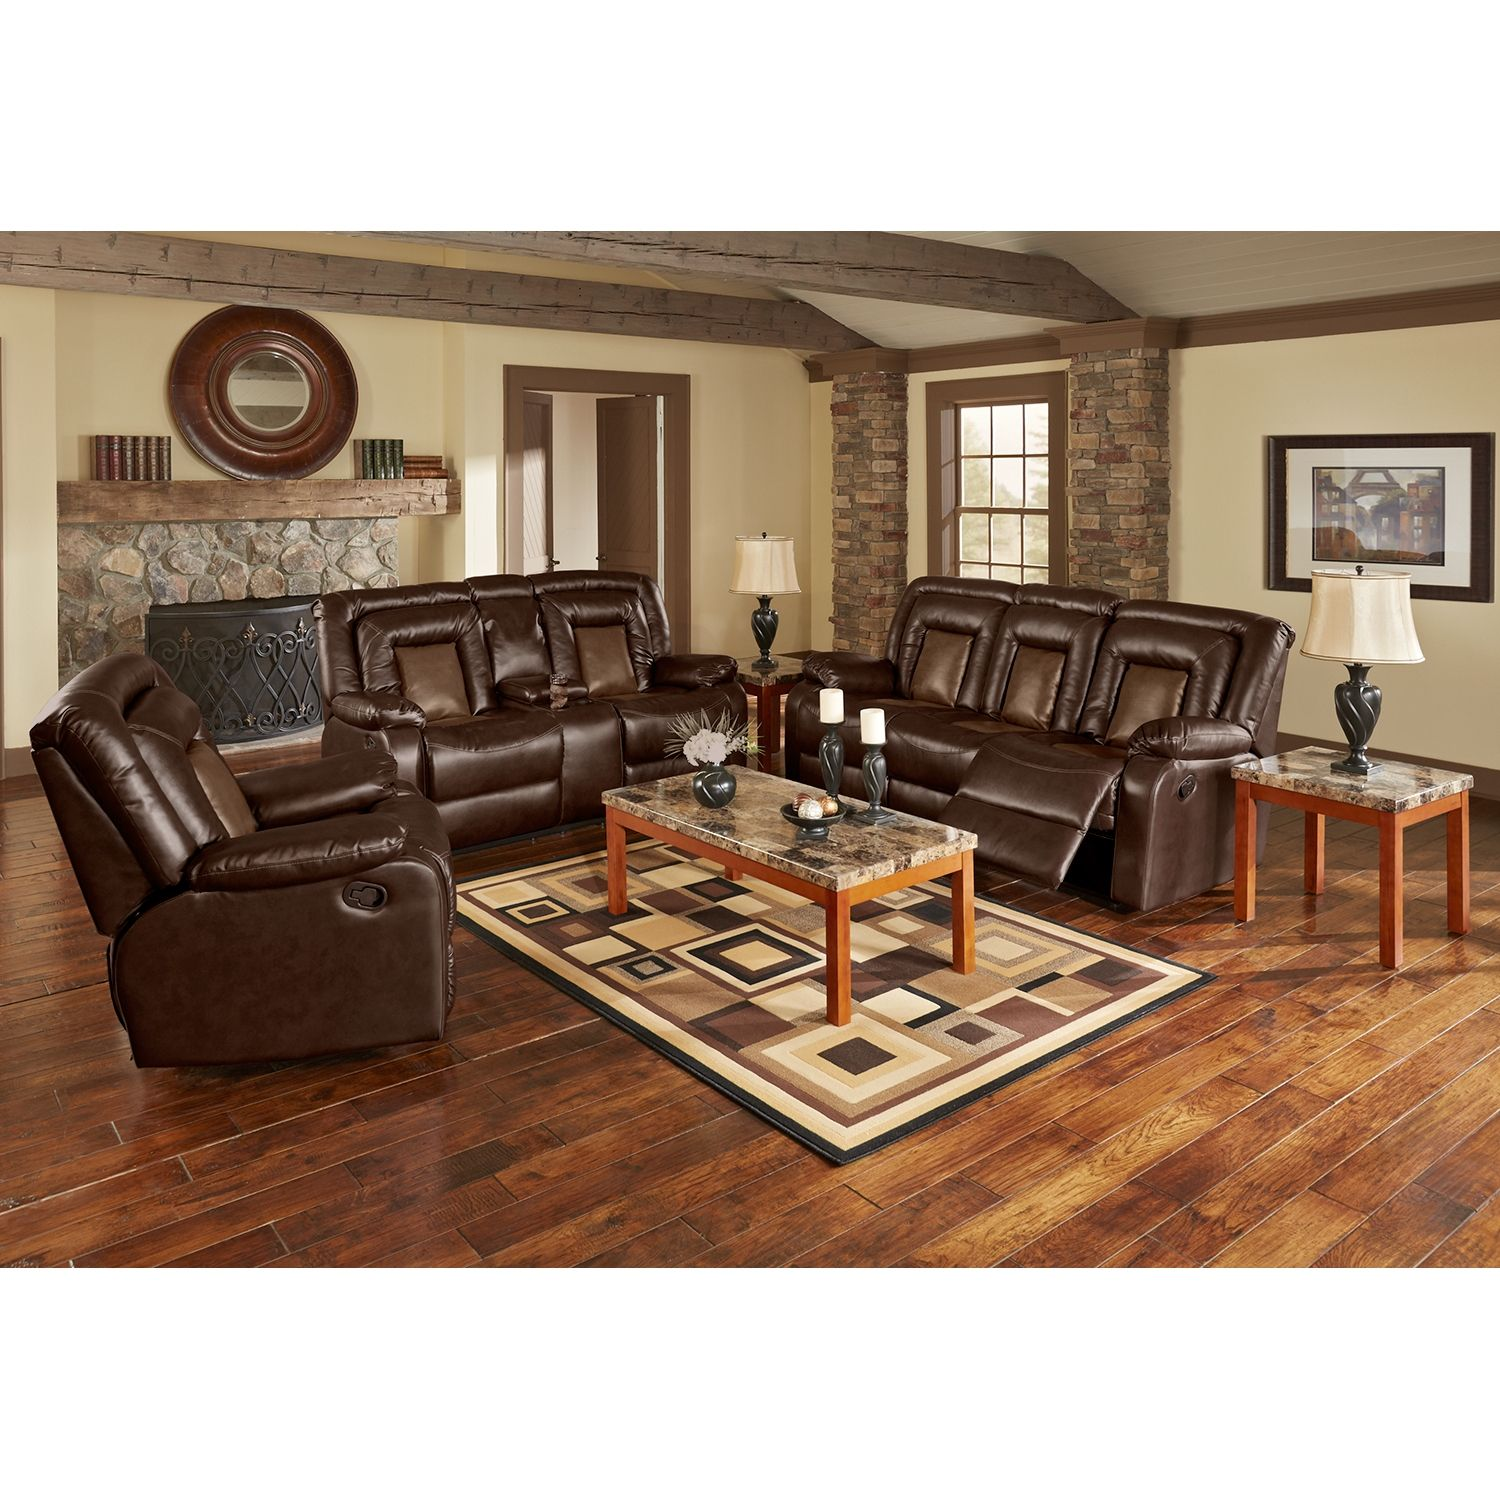 Living Room Sets Value City Furniture living room furniture - cobra 2 pc. reclining living room | family